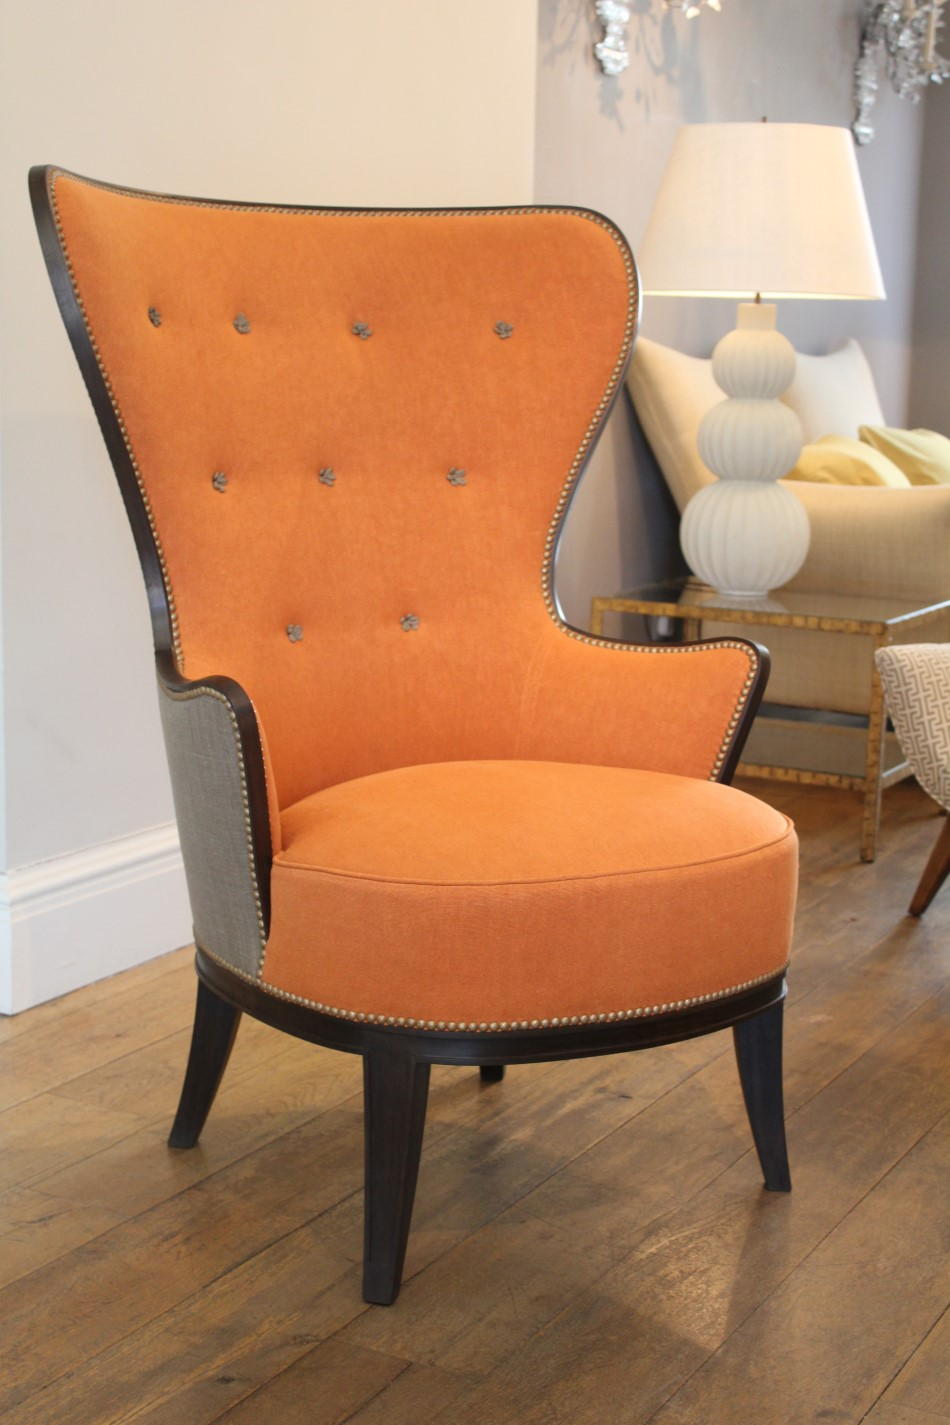 The Chester Chair